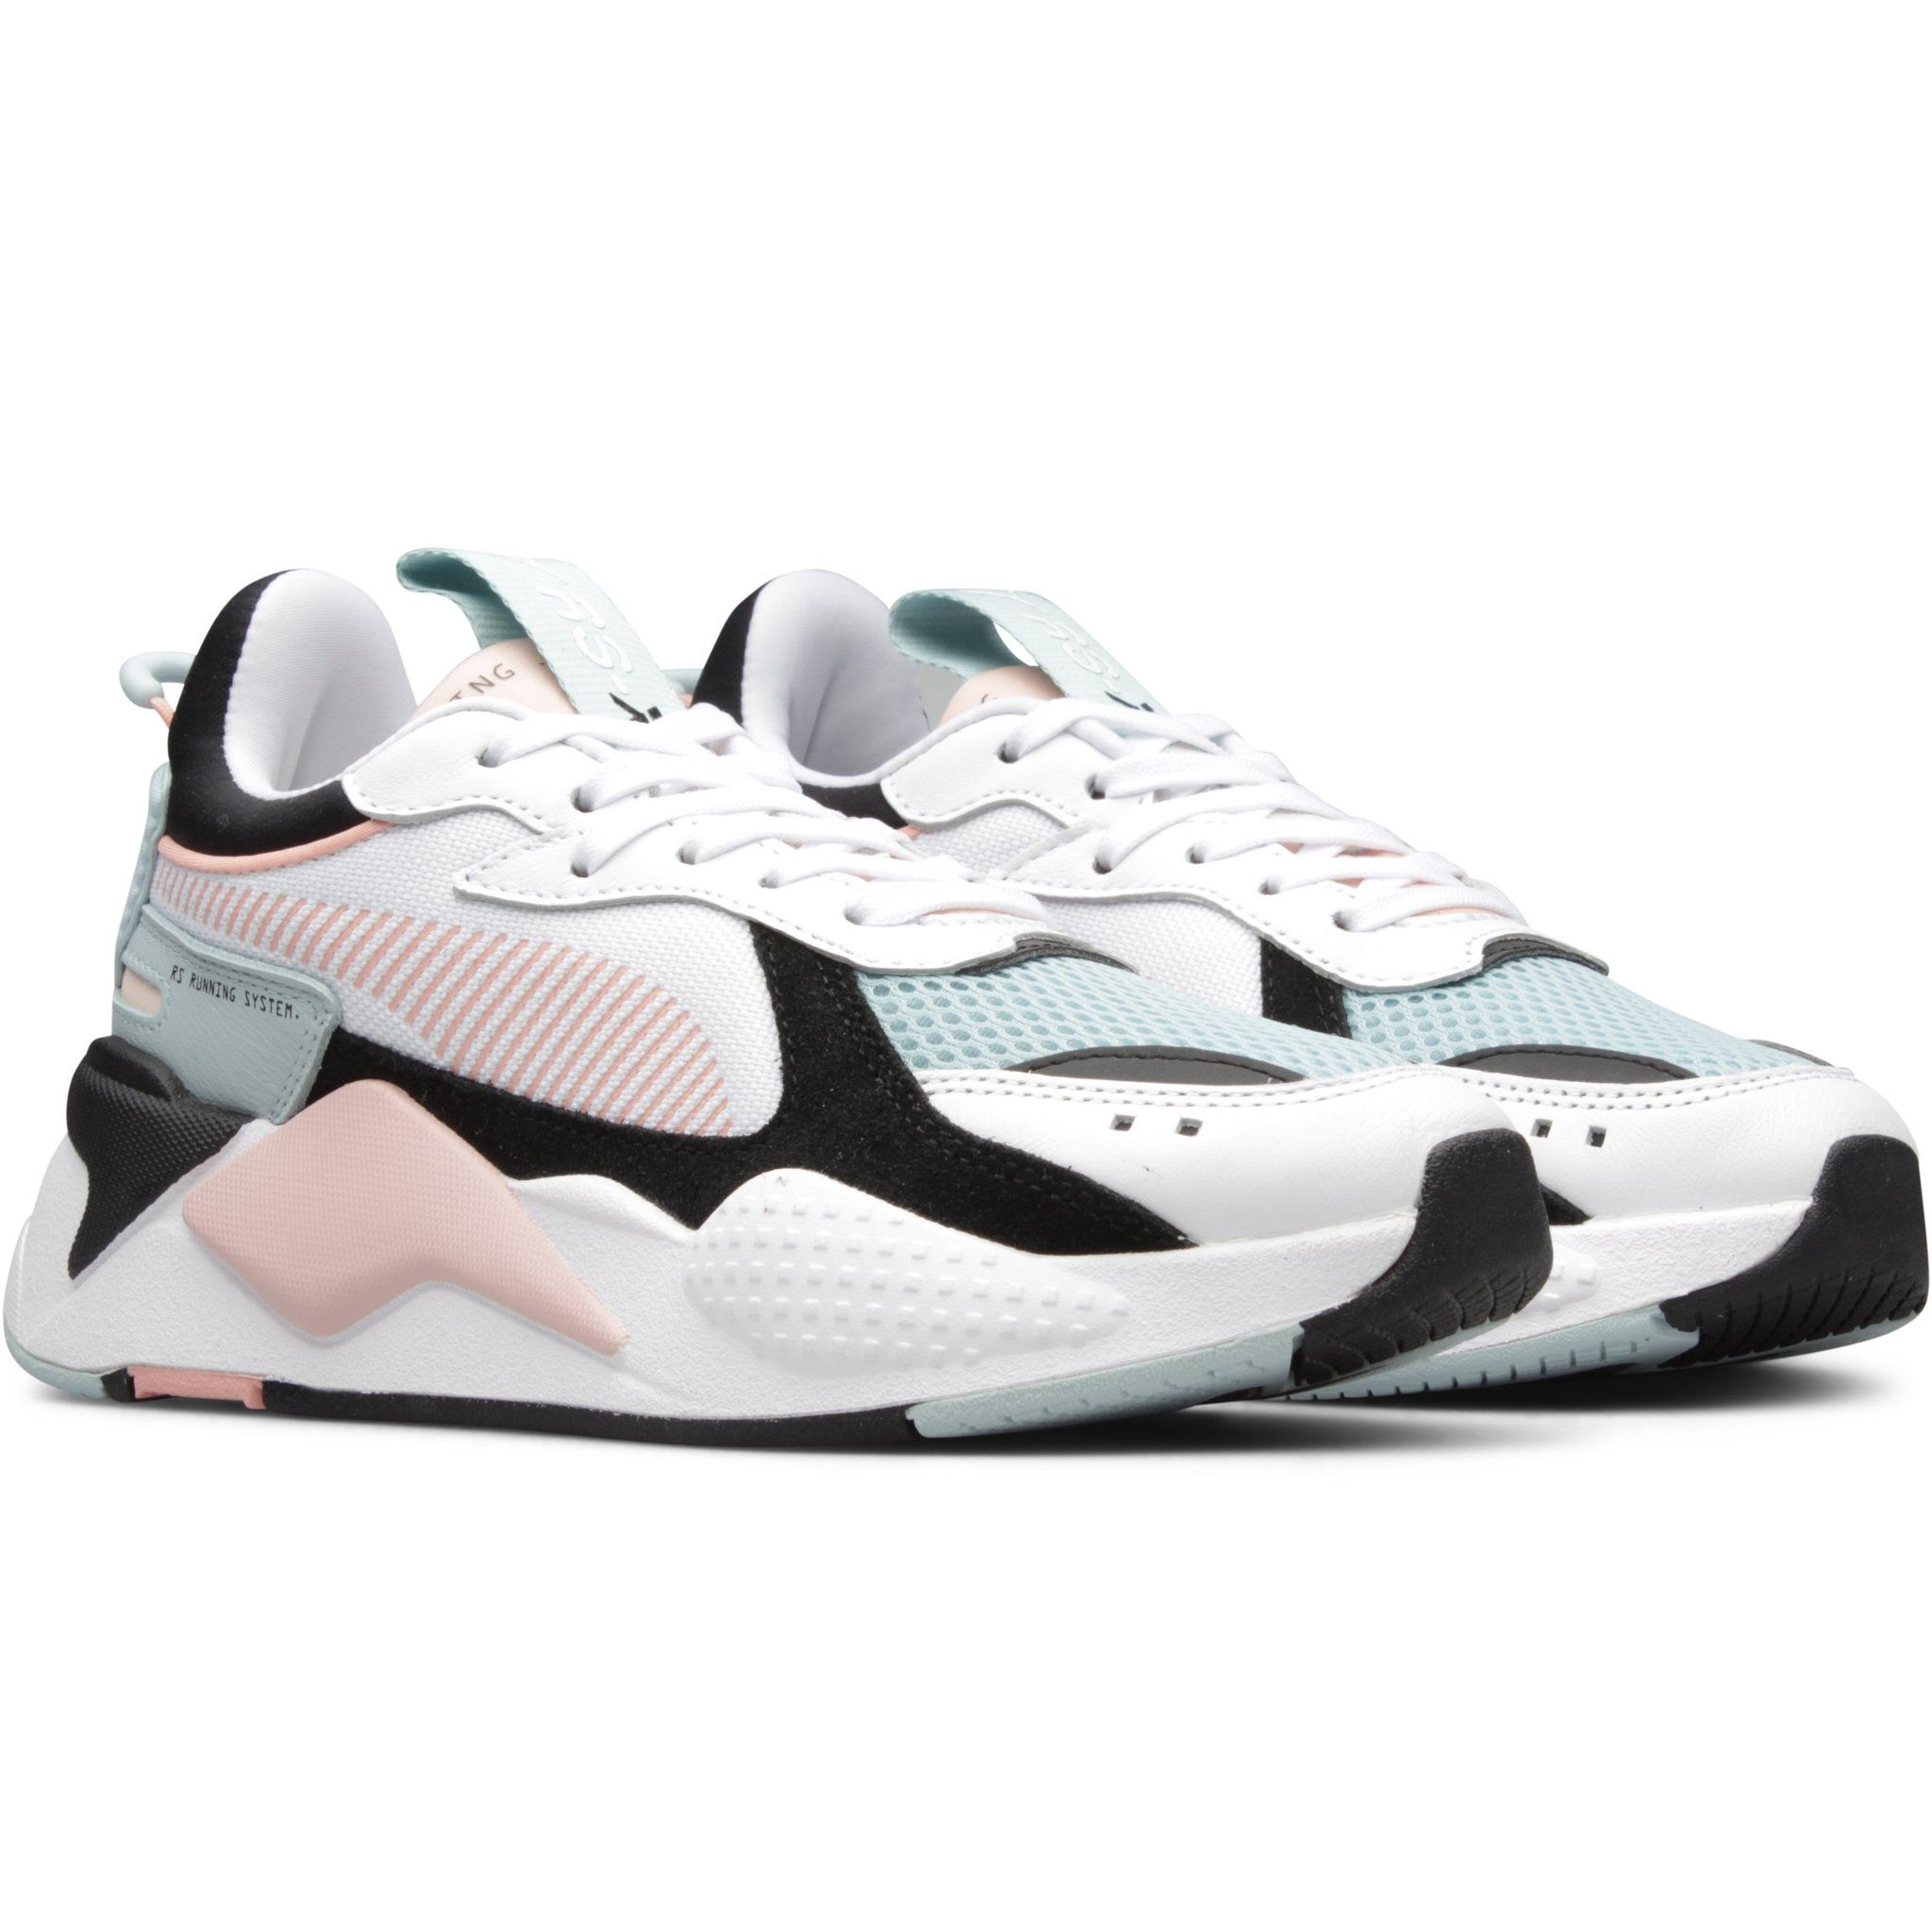 Rs-x reinvention - puma white-peach bud / 5.5 | Multi pocket ...